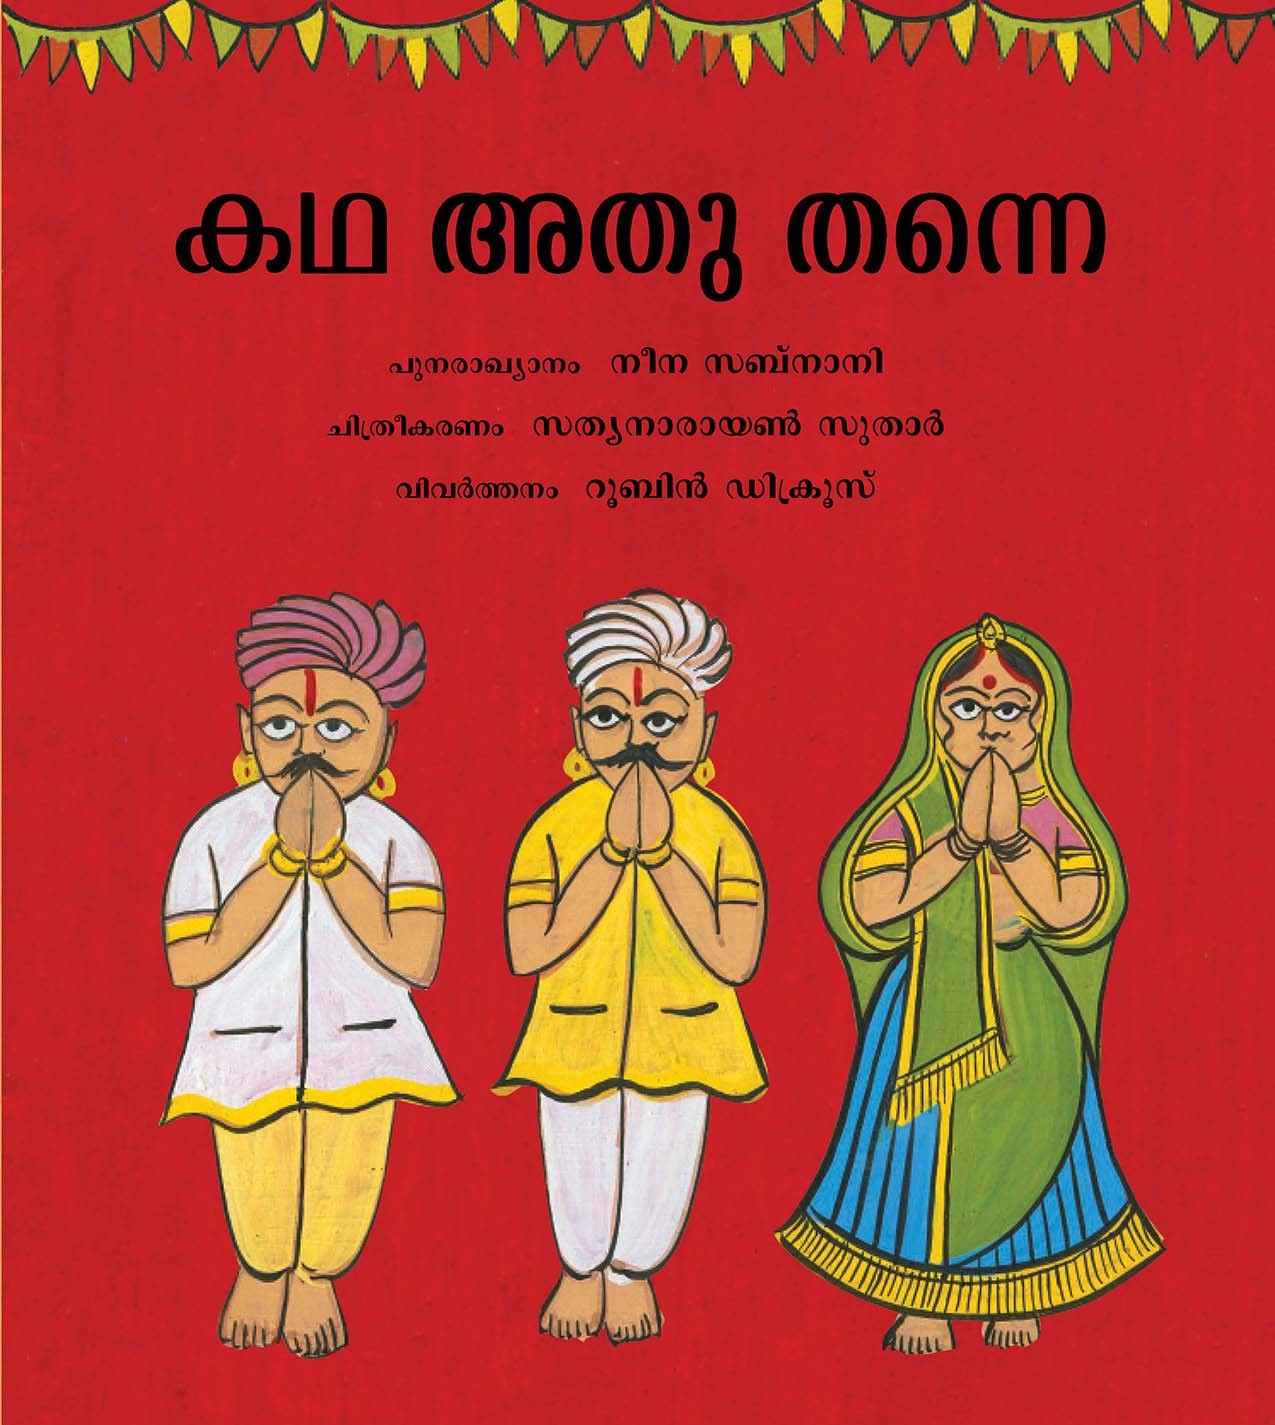 It's All The Same!/Katha Athu Thanne (Malayalam)